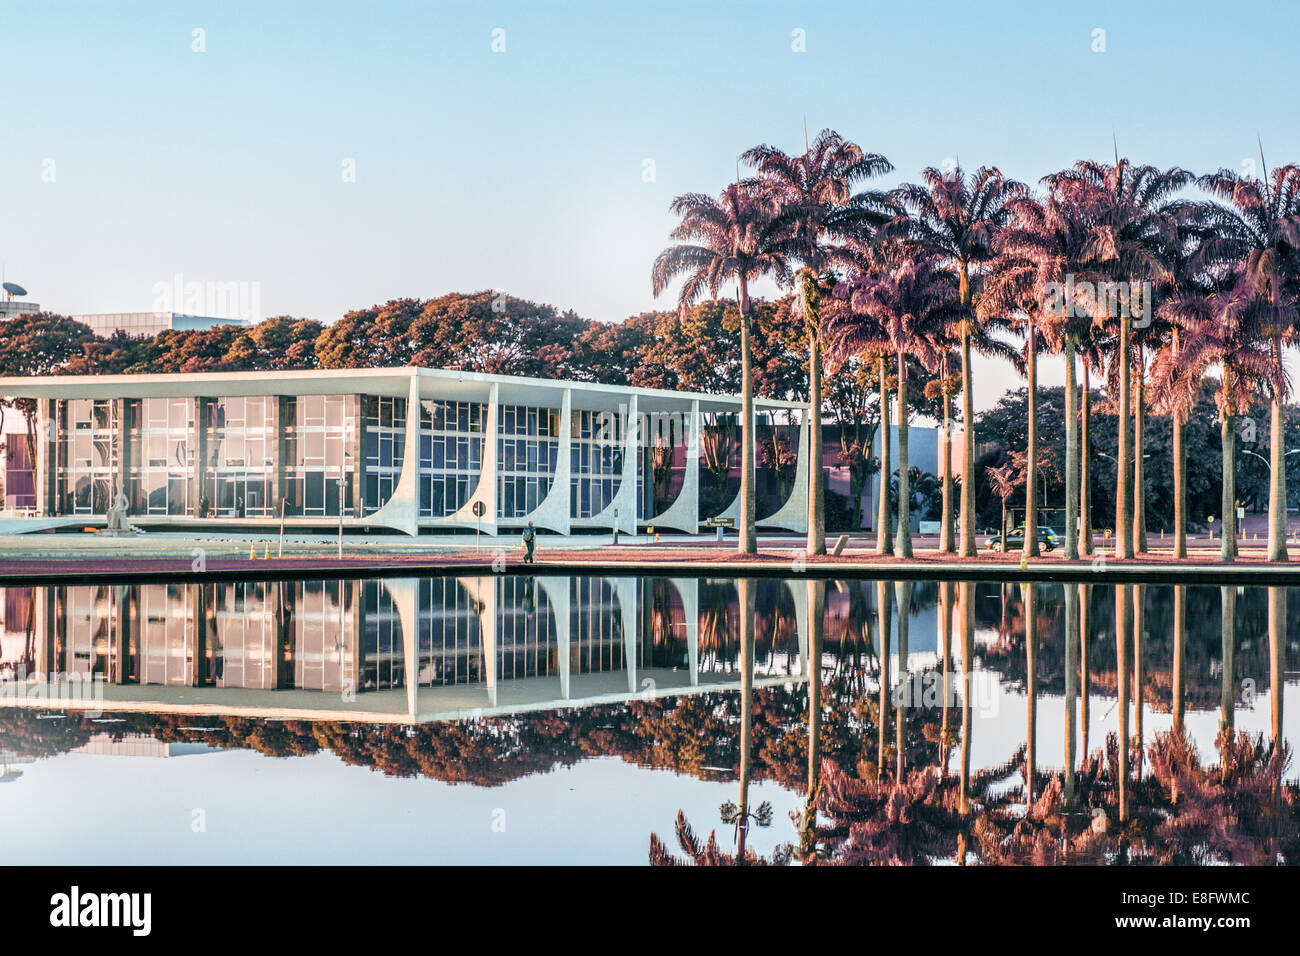 Brazil, Brasilia, Superior Tribunal Federal - Stock Image